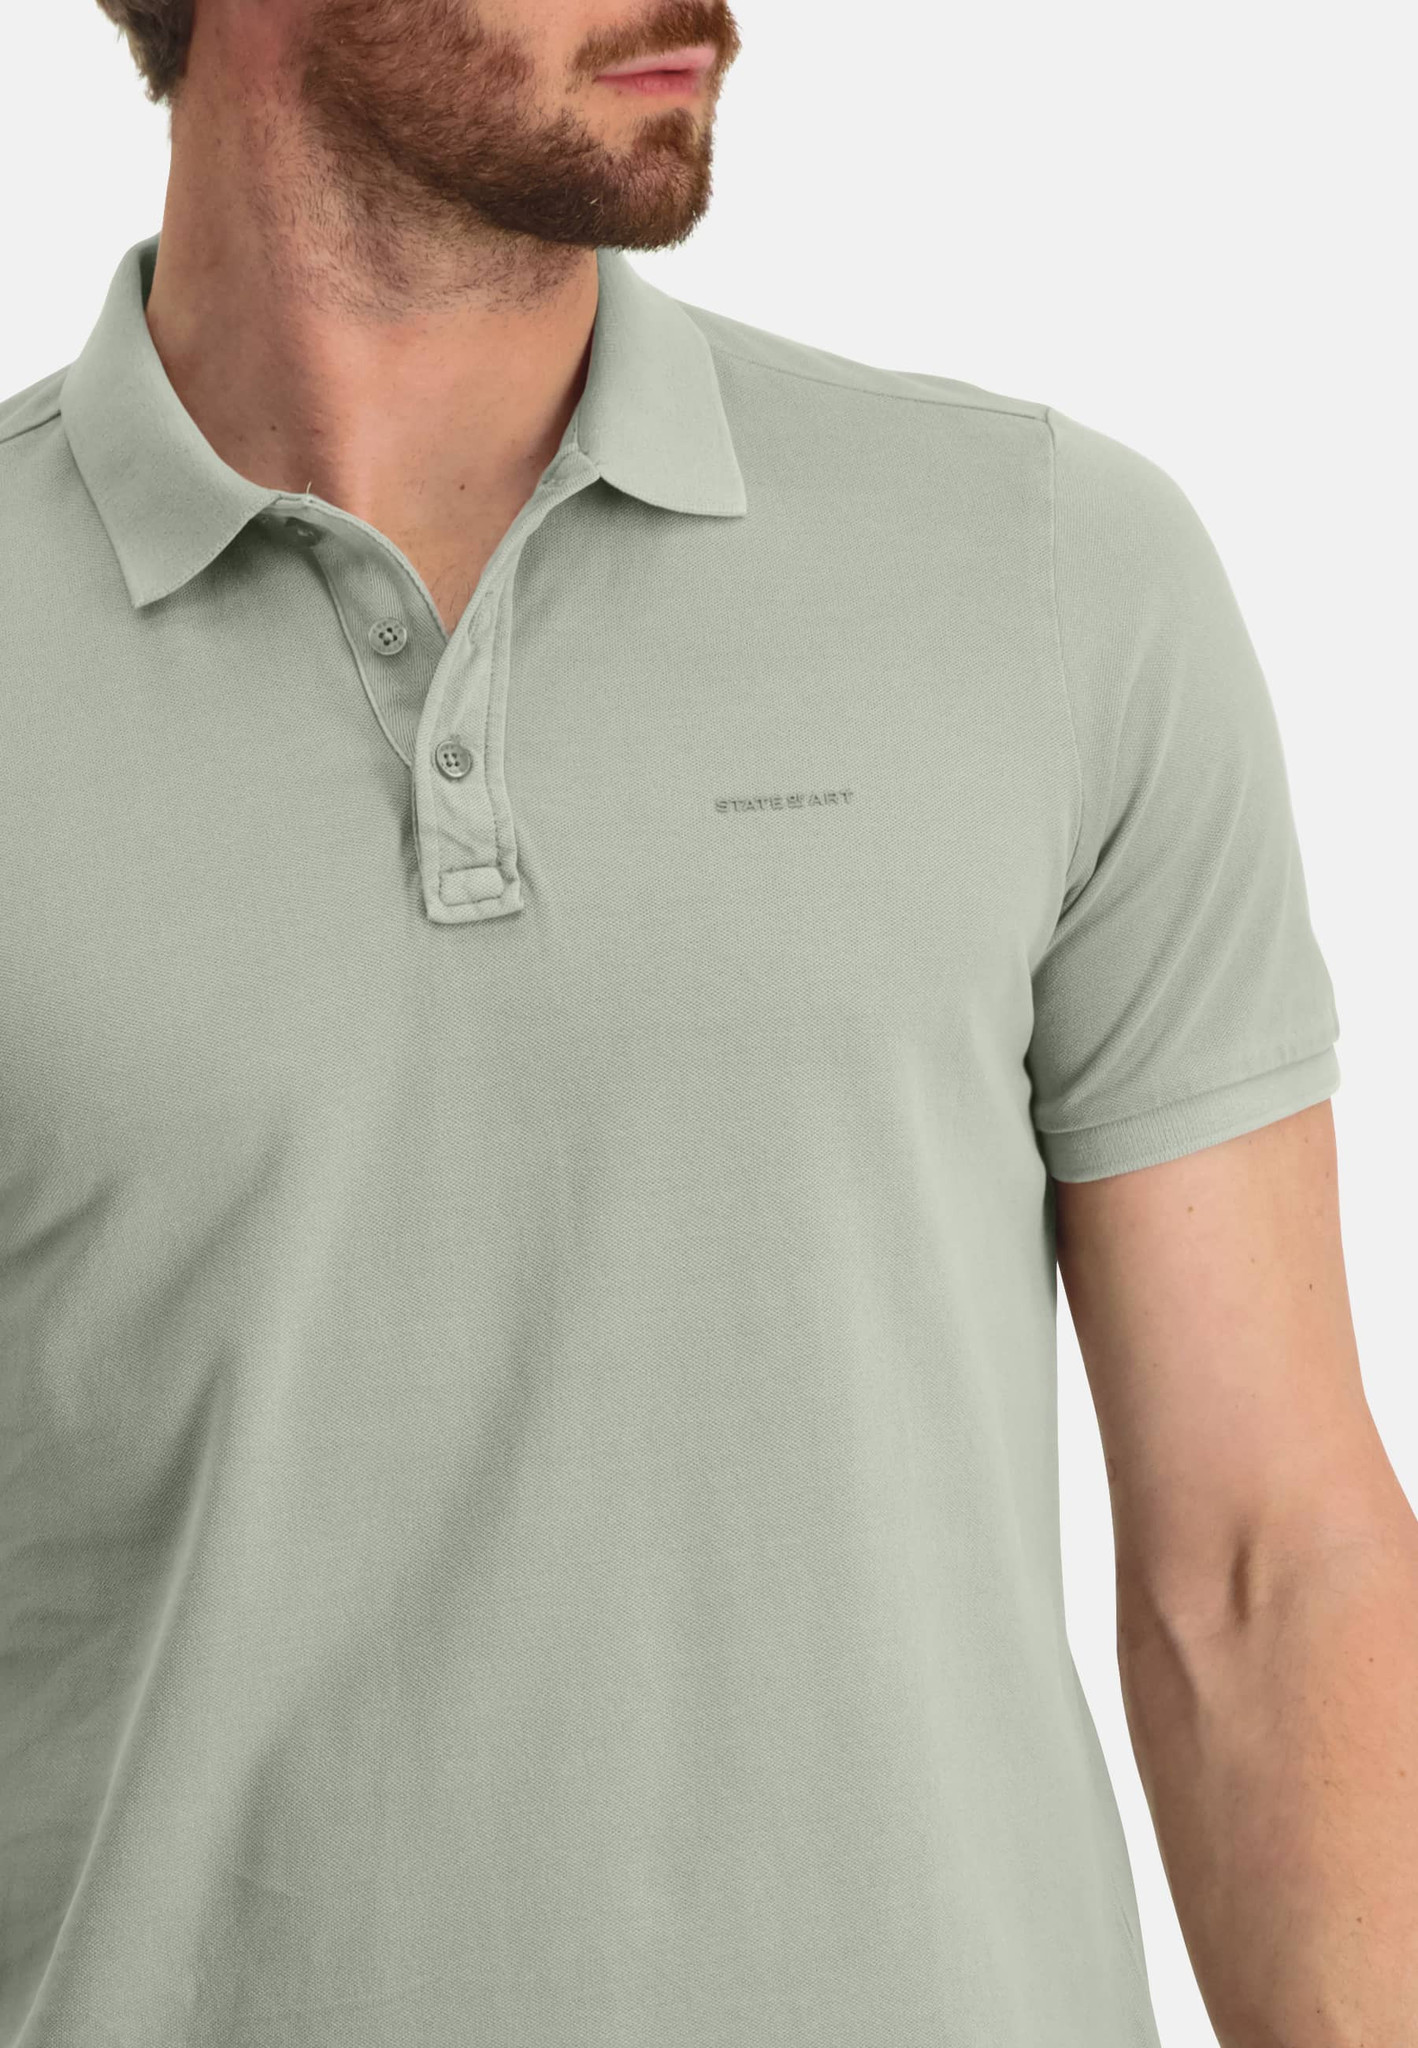 State of Art Polo State of Art 461-11525-3600